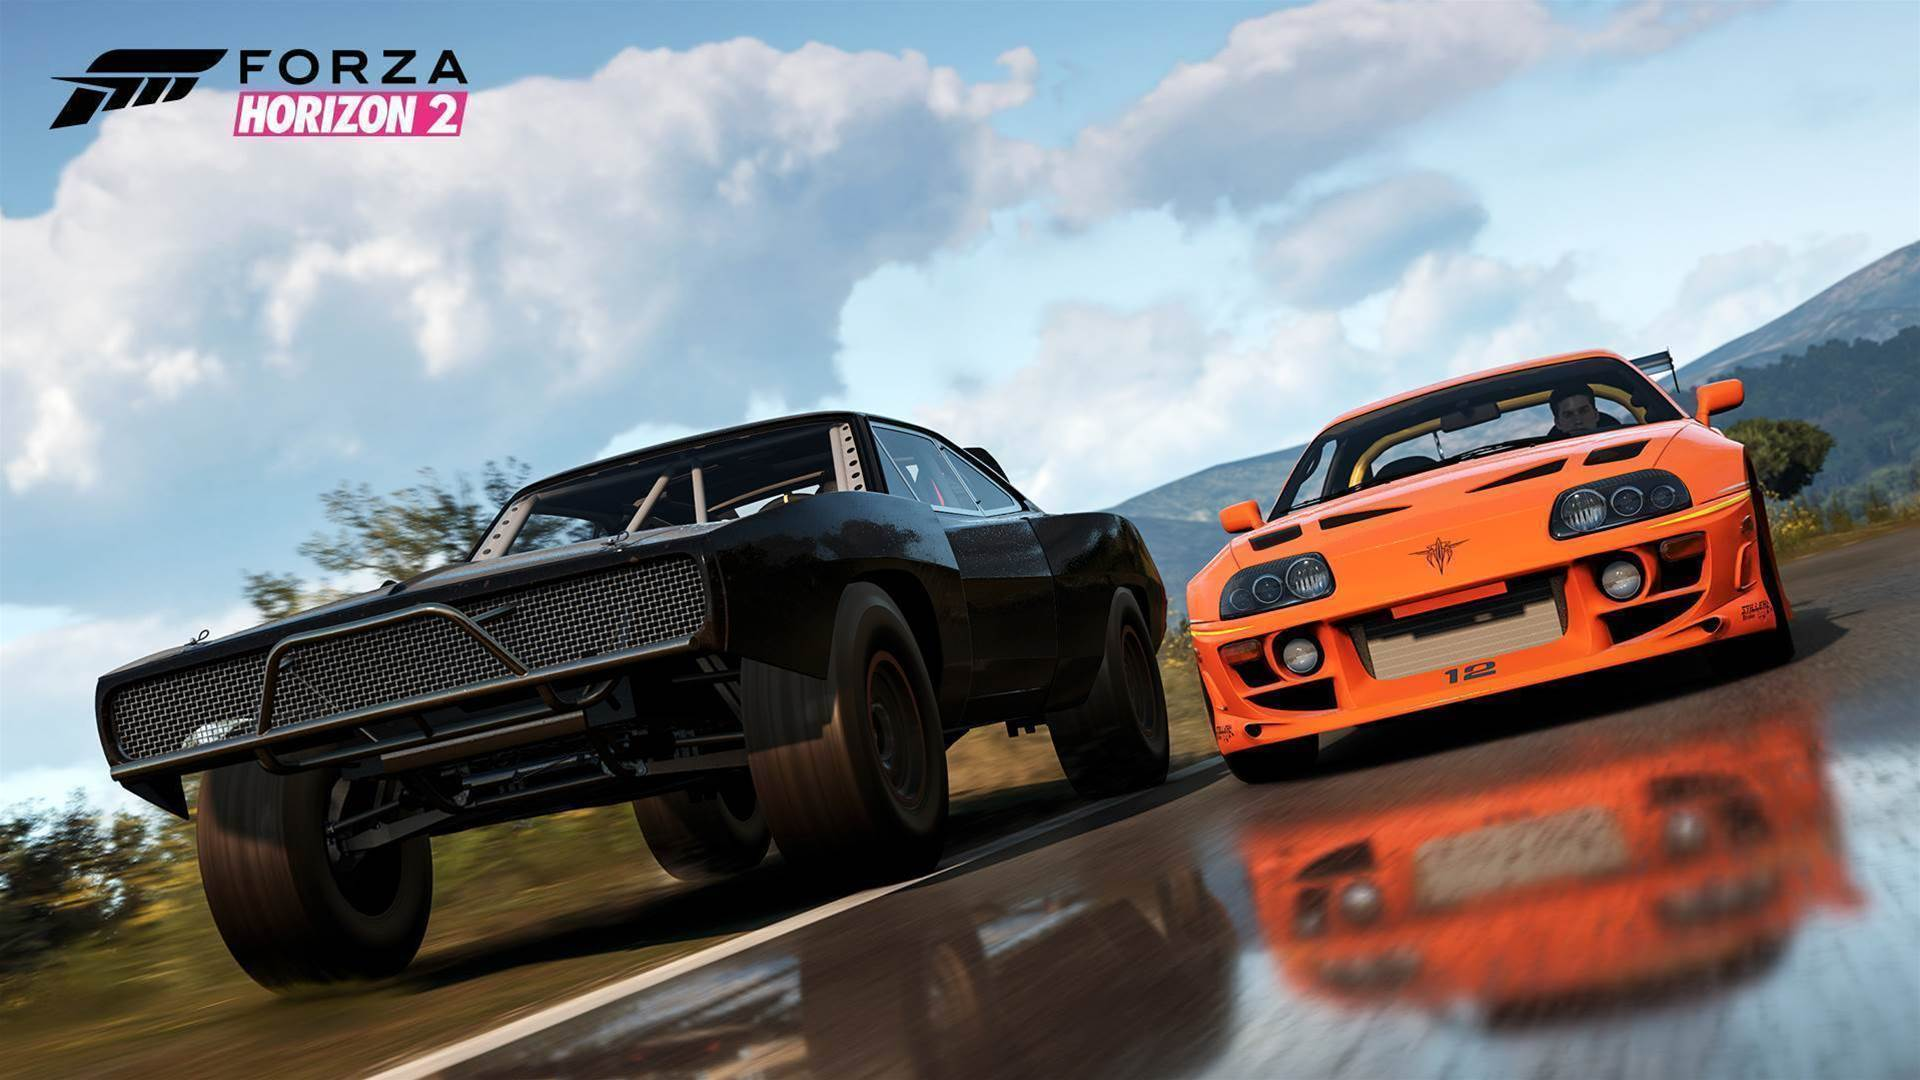 Games With Gold August releases include Forza Horizon 2, For Honour